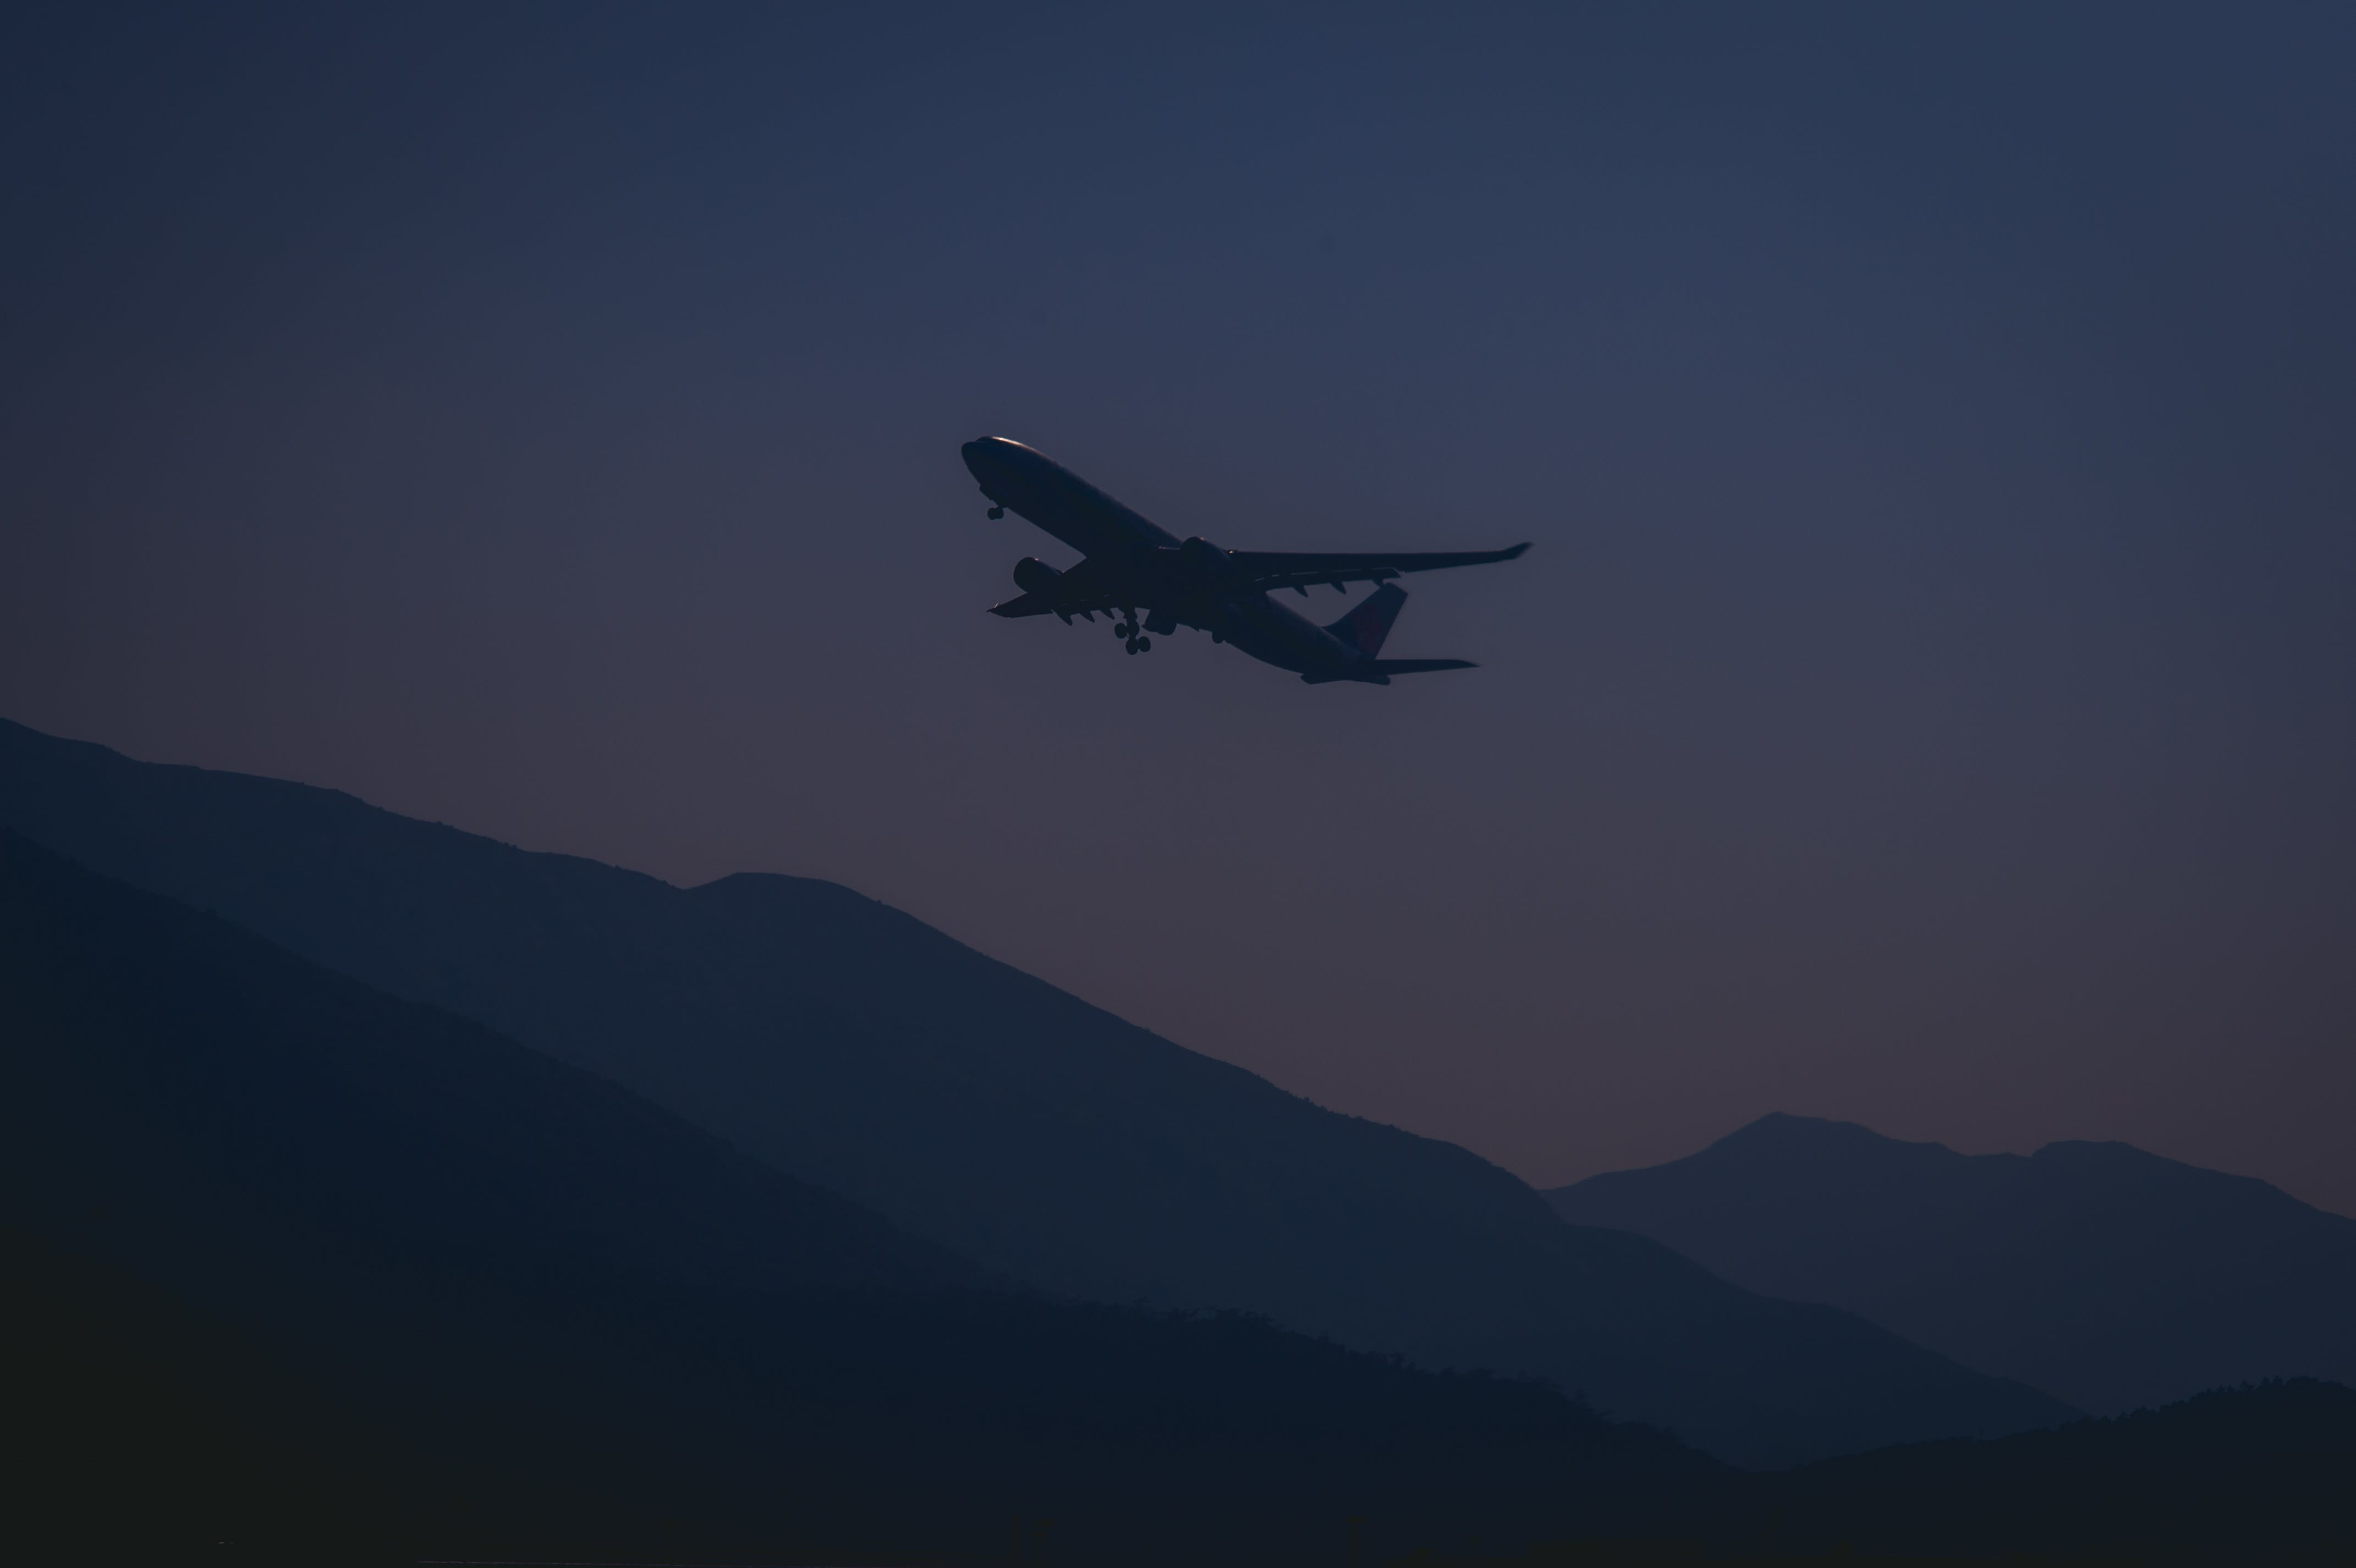 Silhouette of Airplane During Evening